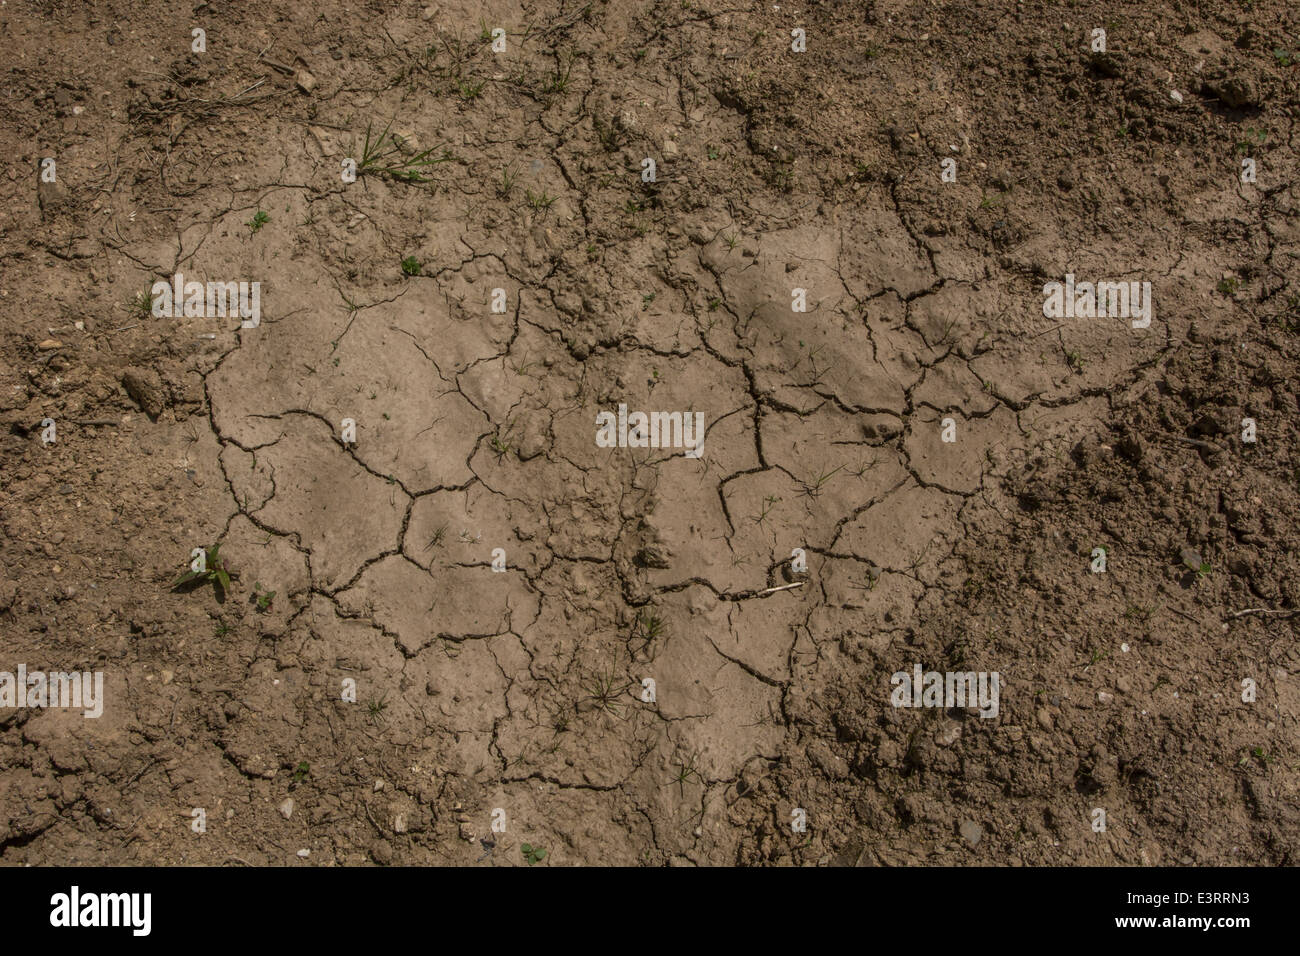 UK drought / Signs of pending water shortage as mud cracks in the heat. Heatwave crops metaphor, water crisis. - Stock Image